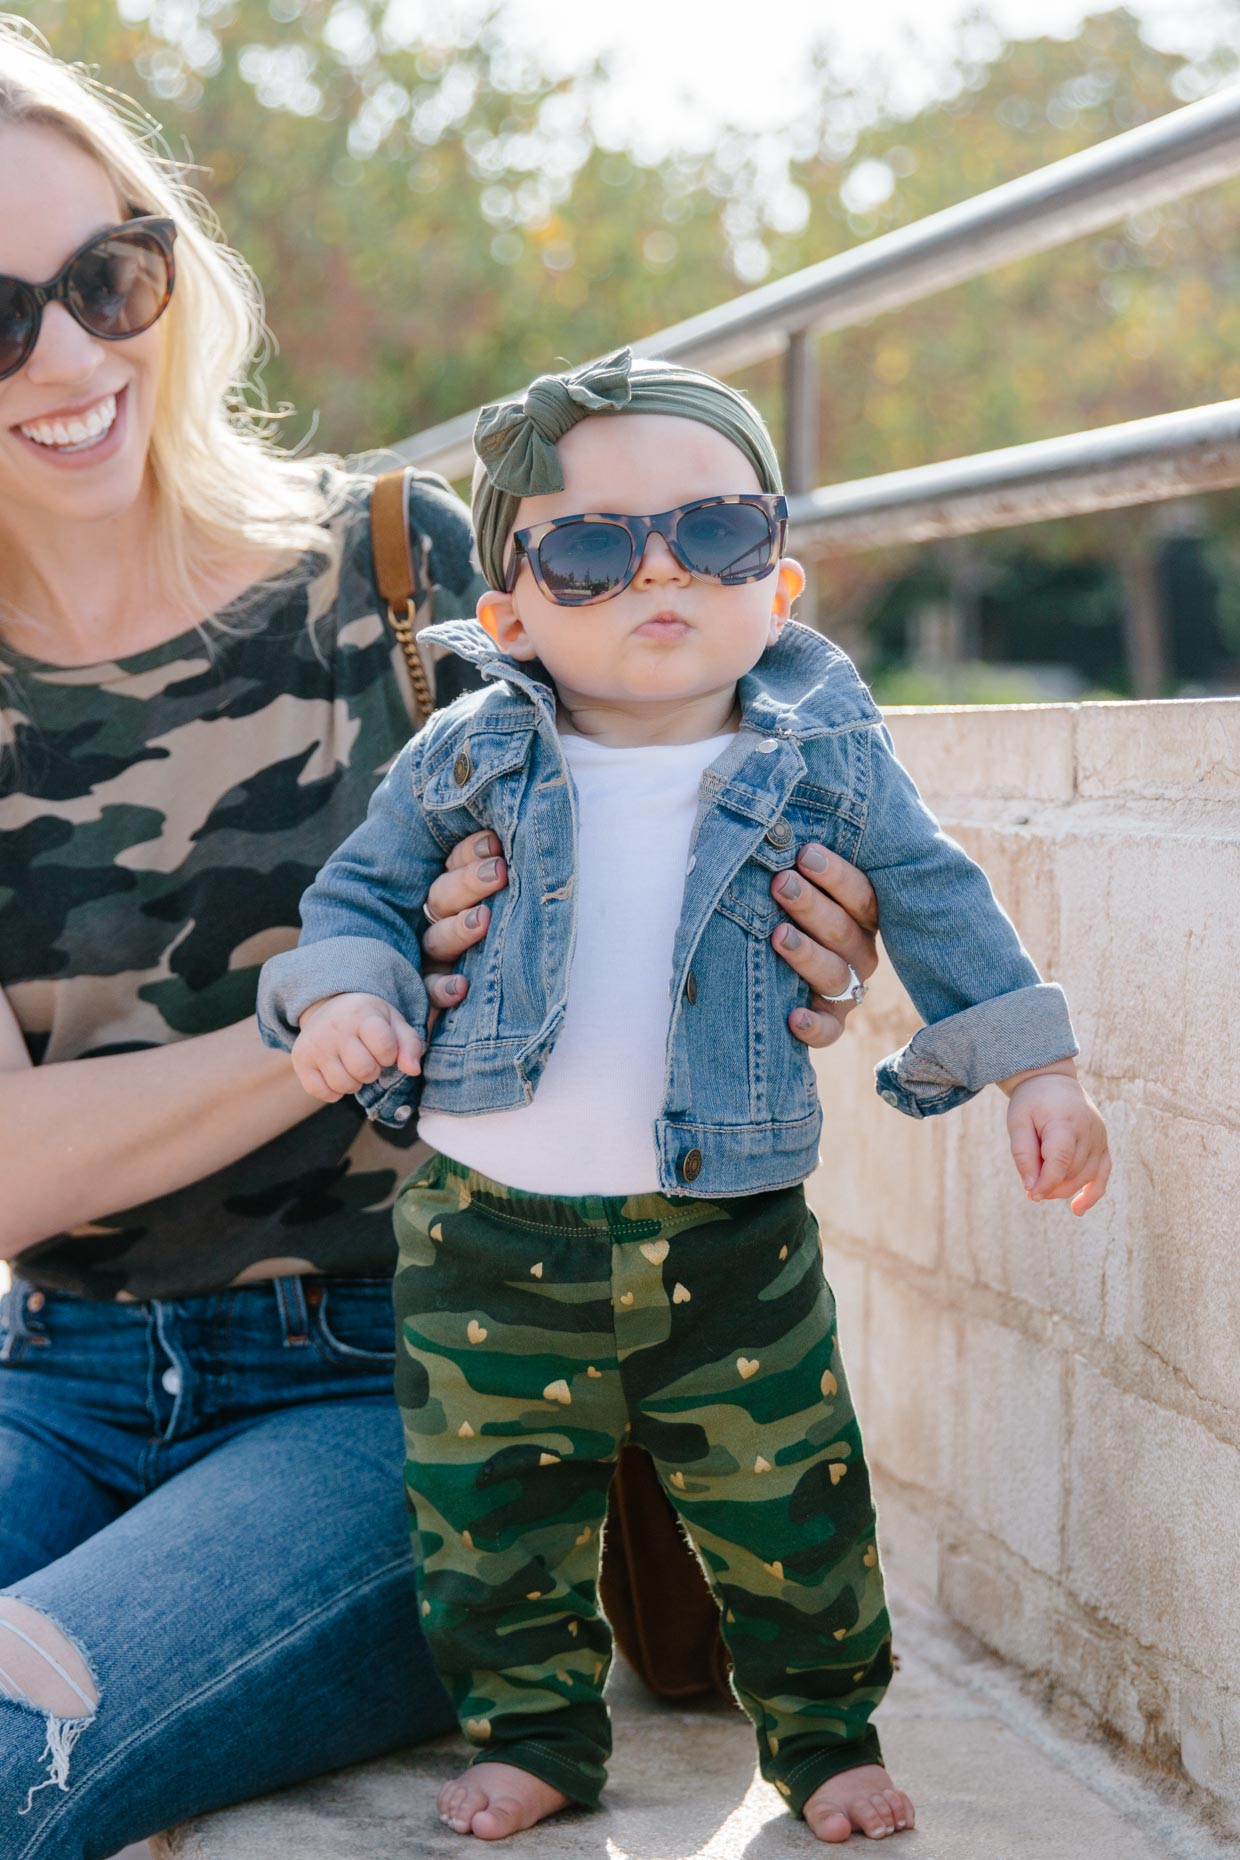 4190007778f9c Let's be honest: anything you dress a baby in is automatically going to be  adorable thanks to the mini size, but this denim jacket has to be the  cutest ...